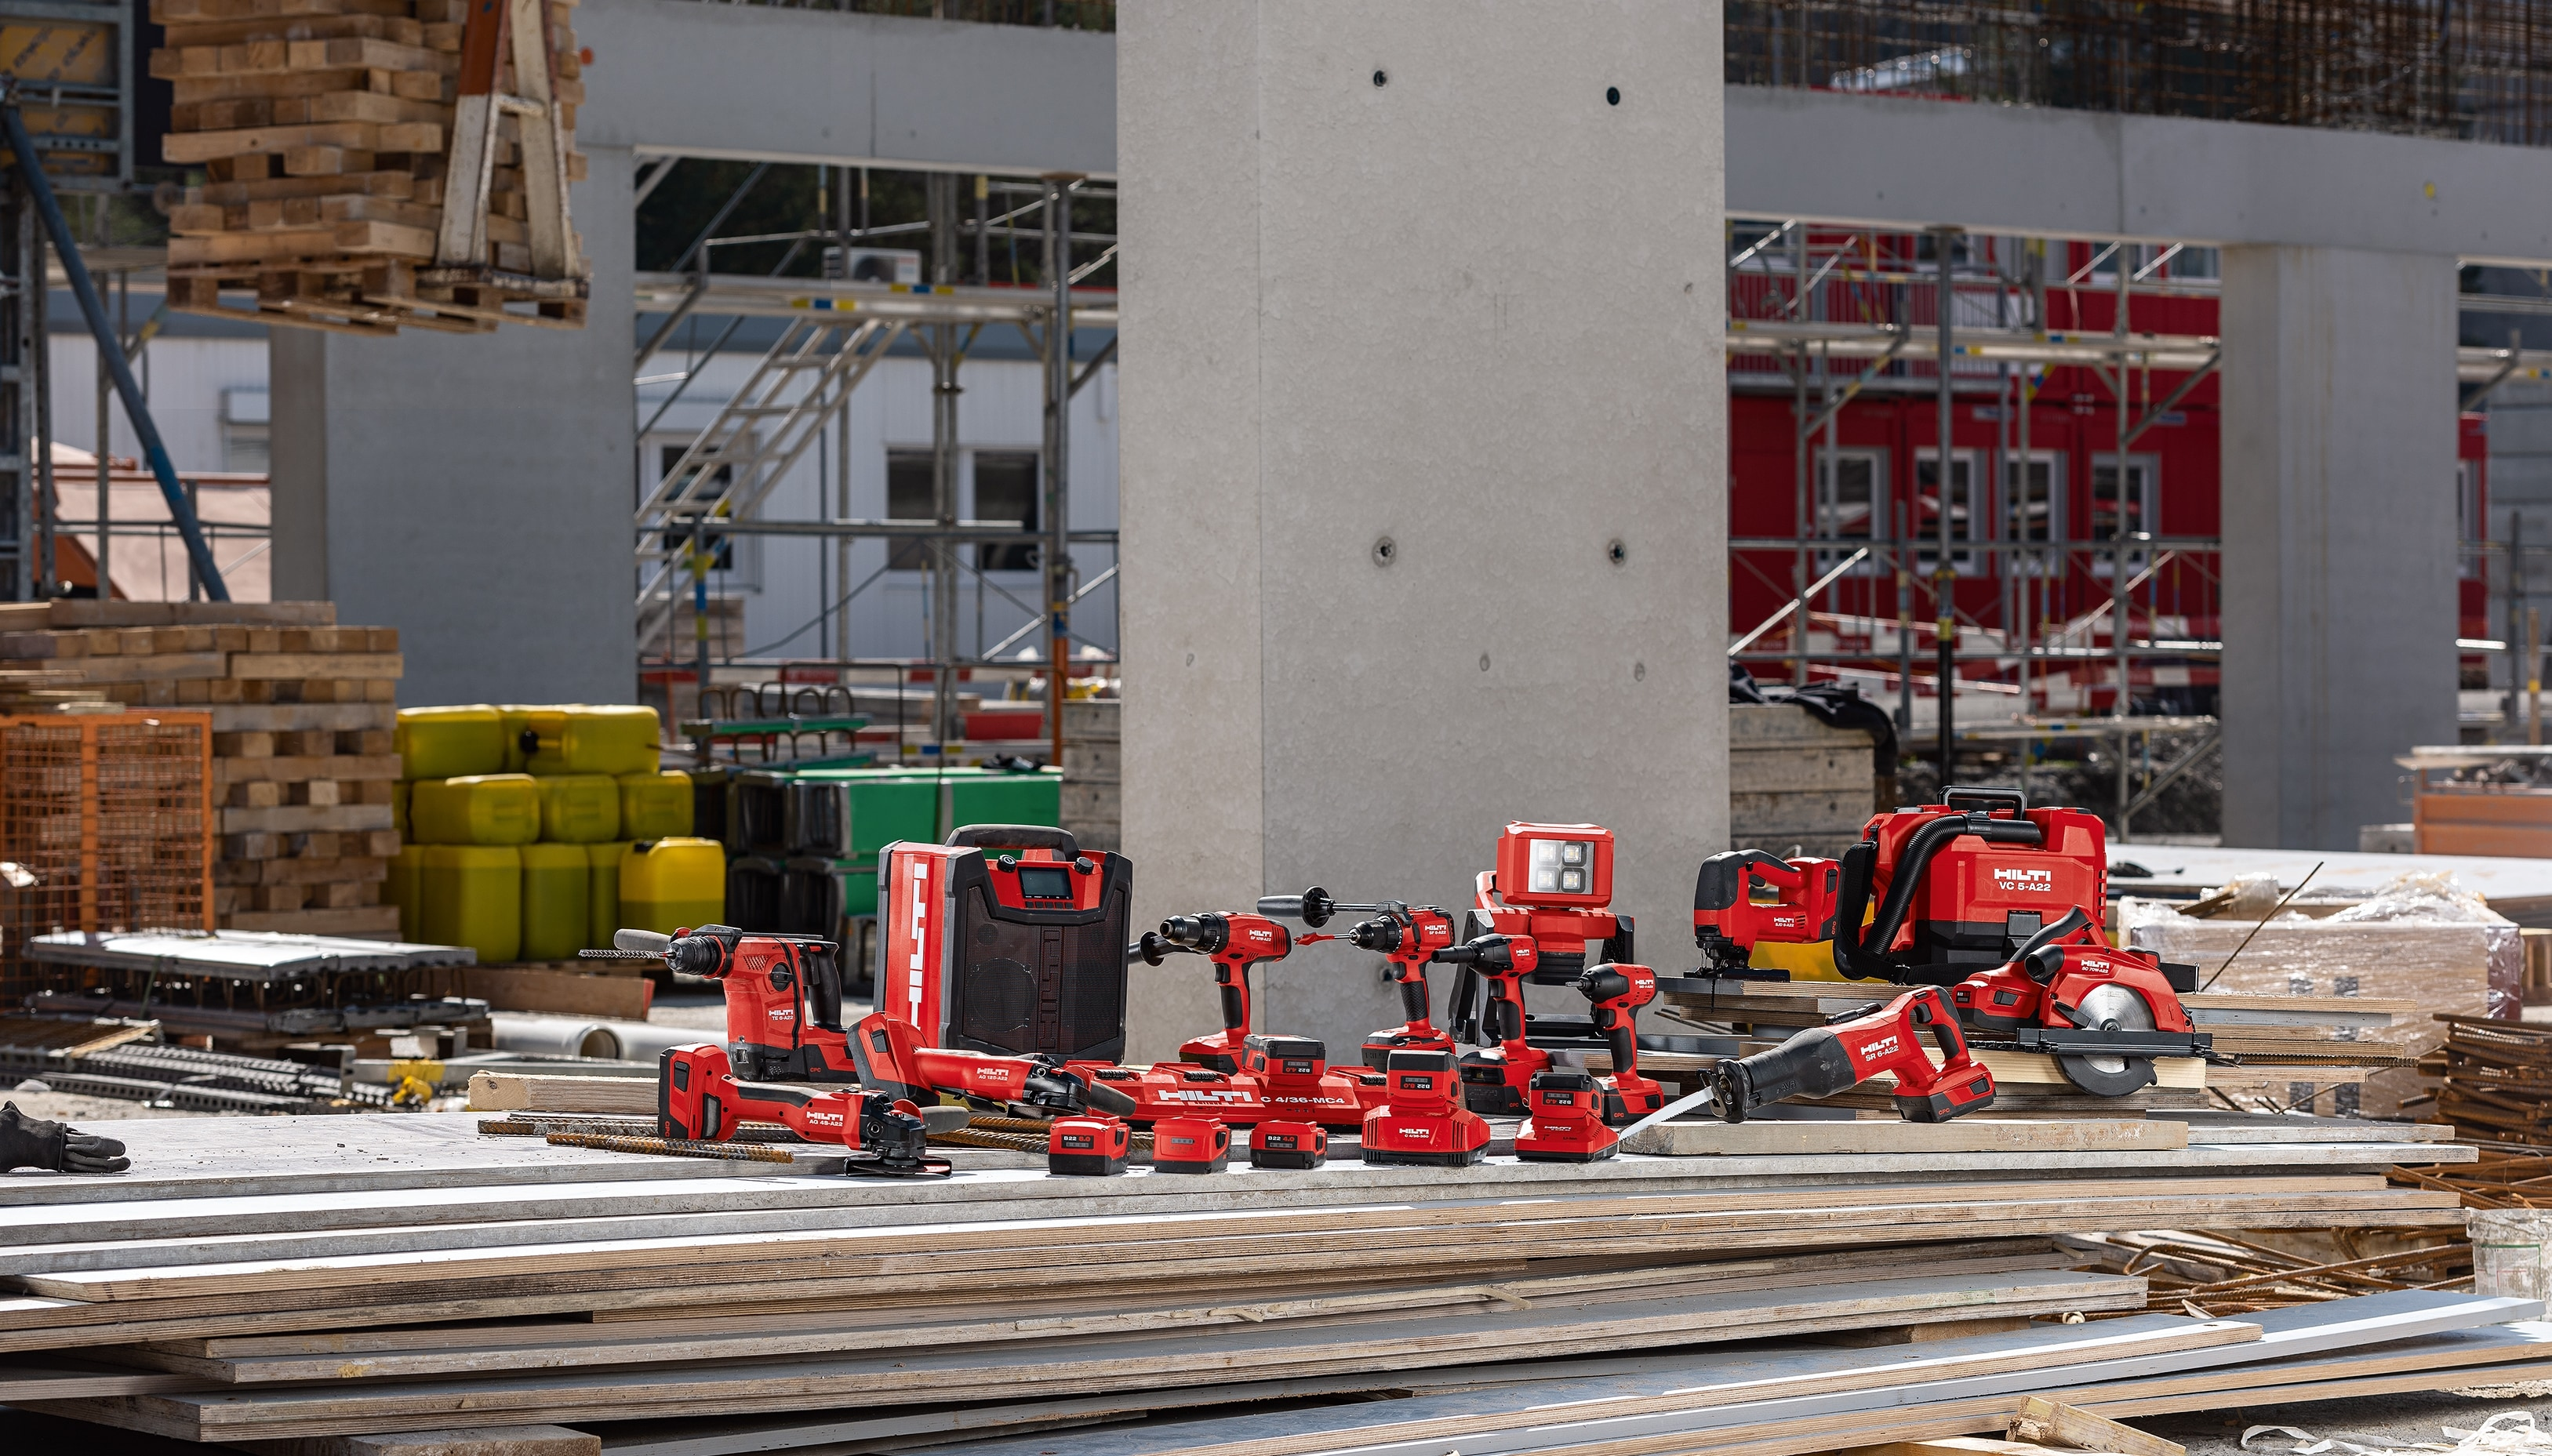 Hilti introduces the new range of B22 batteries